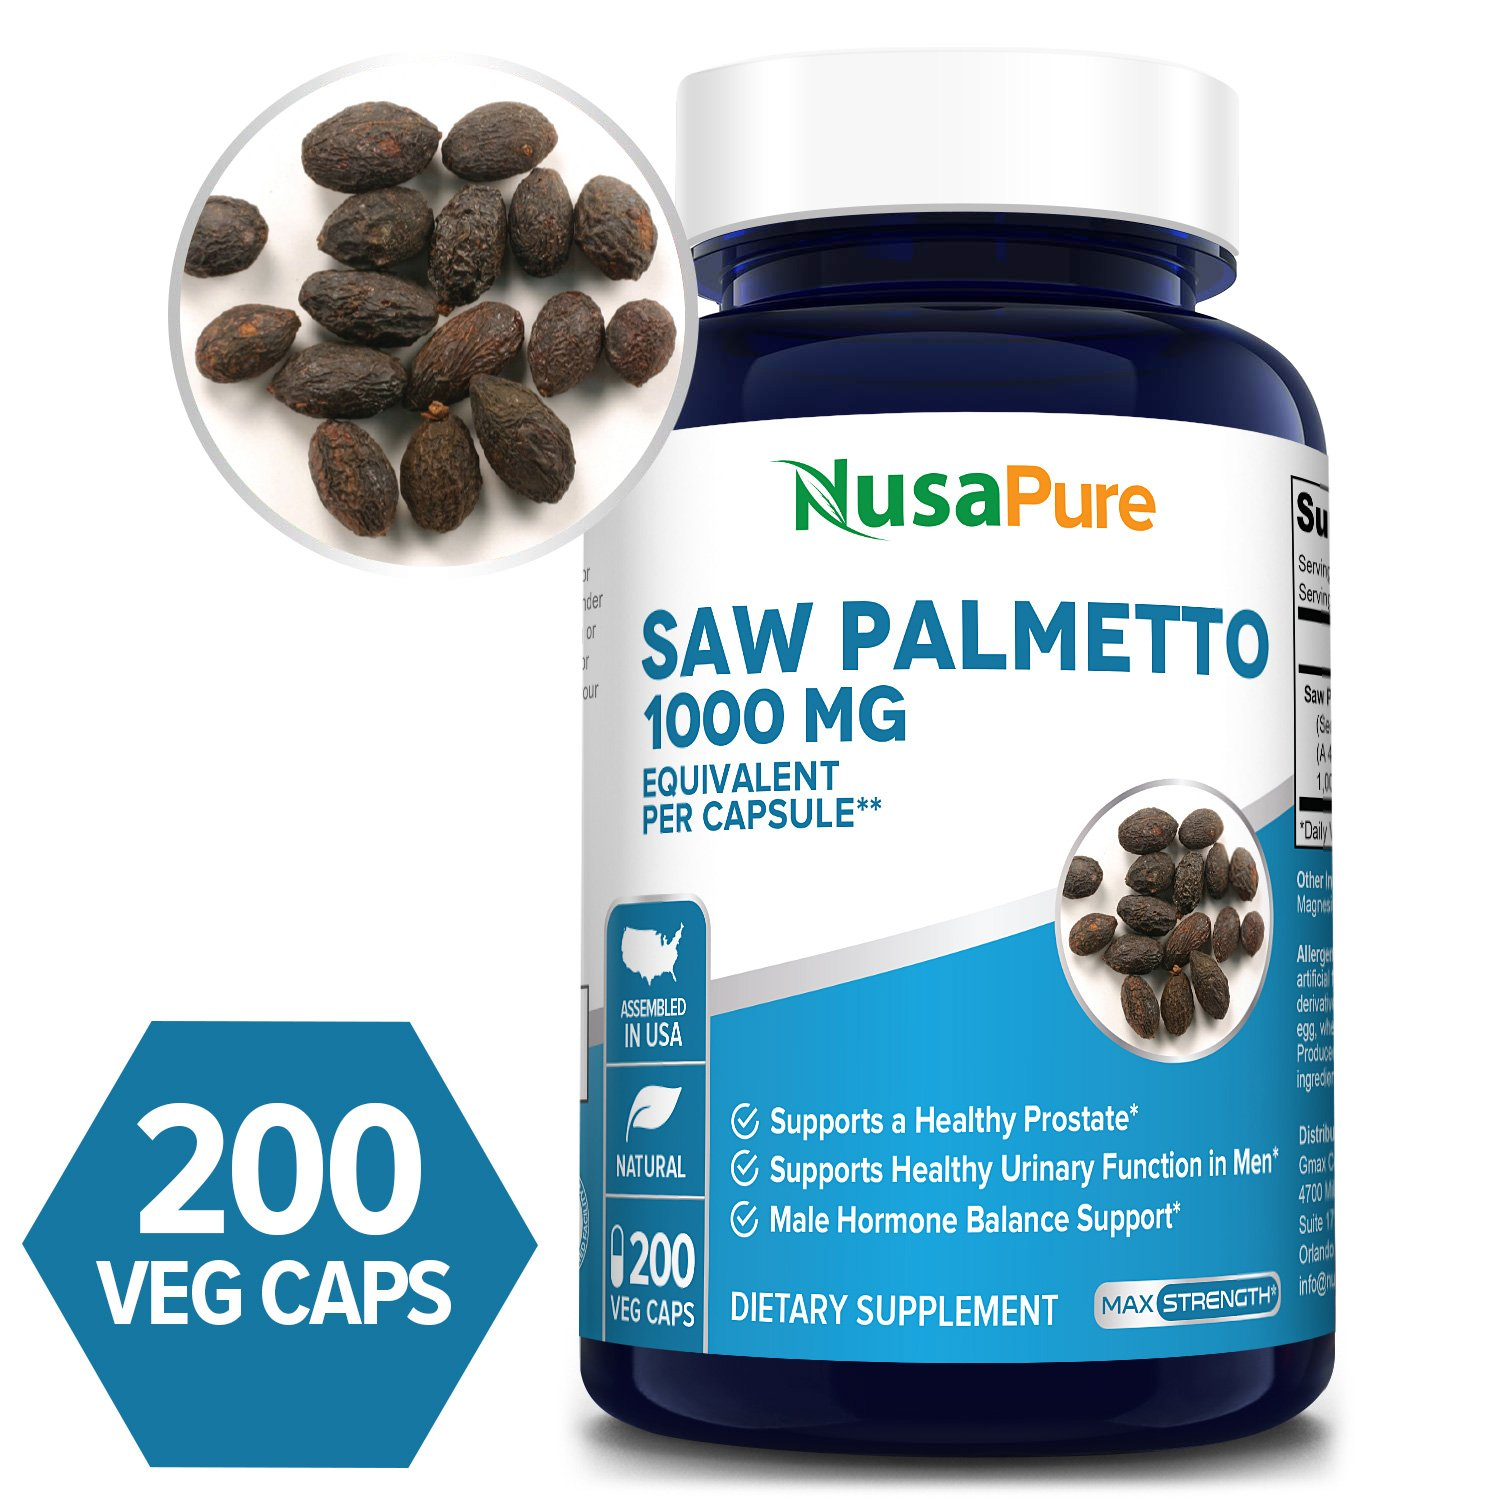 Saw Palmetto Extract 1000 mg- 200 Veg Caps (Non-GMO & Gluten-free)